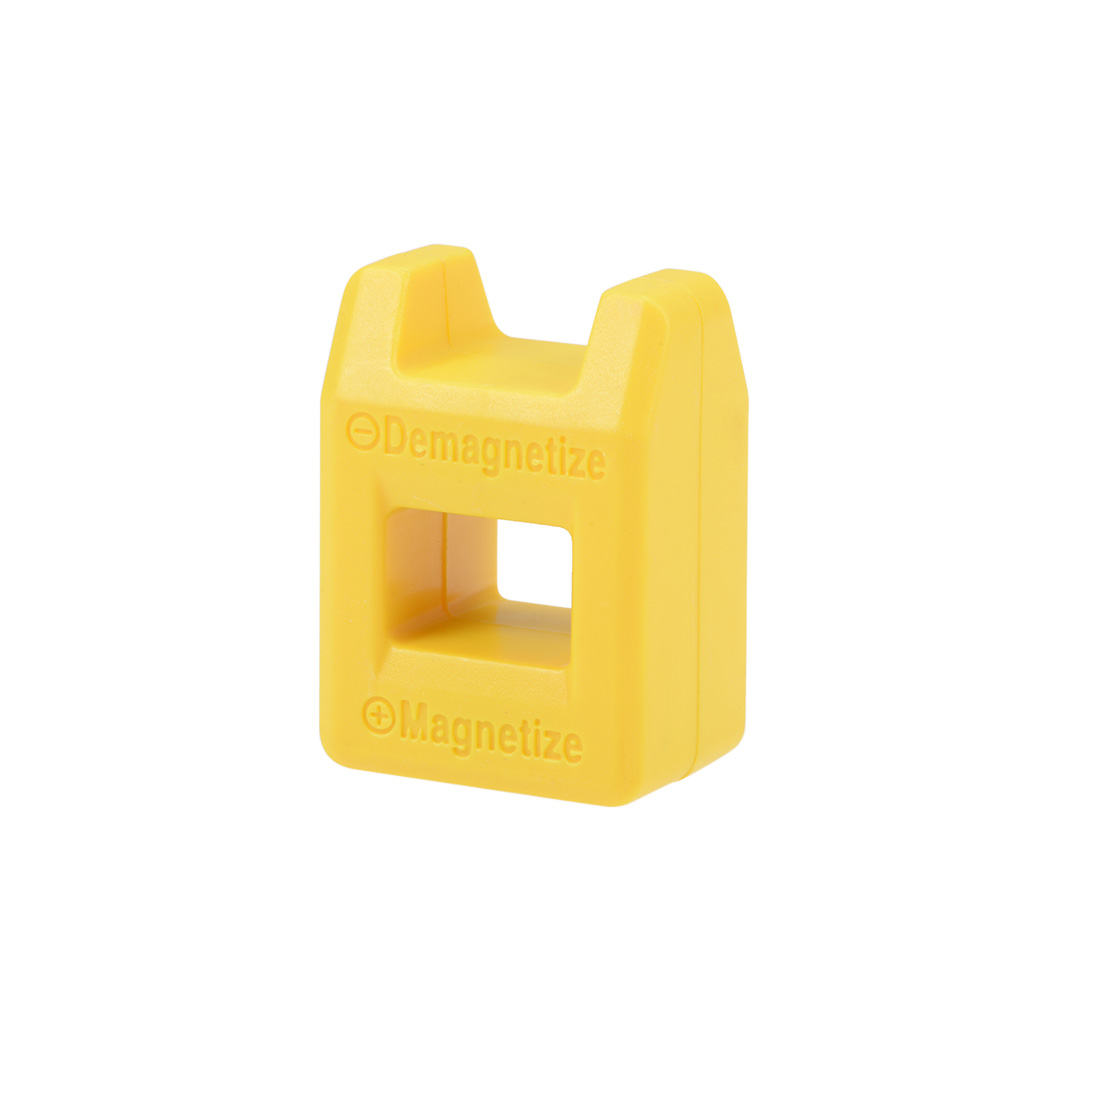 Magnetizer Demagnetizer for Screwdriver Bits Tips Screw Driver Magnetic Yellow